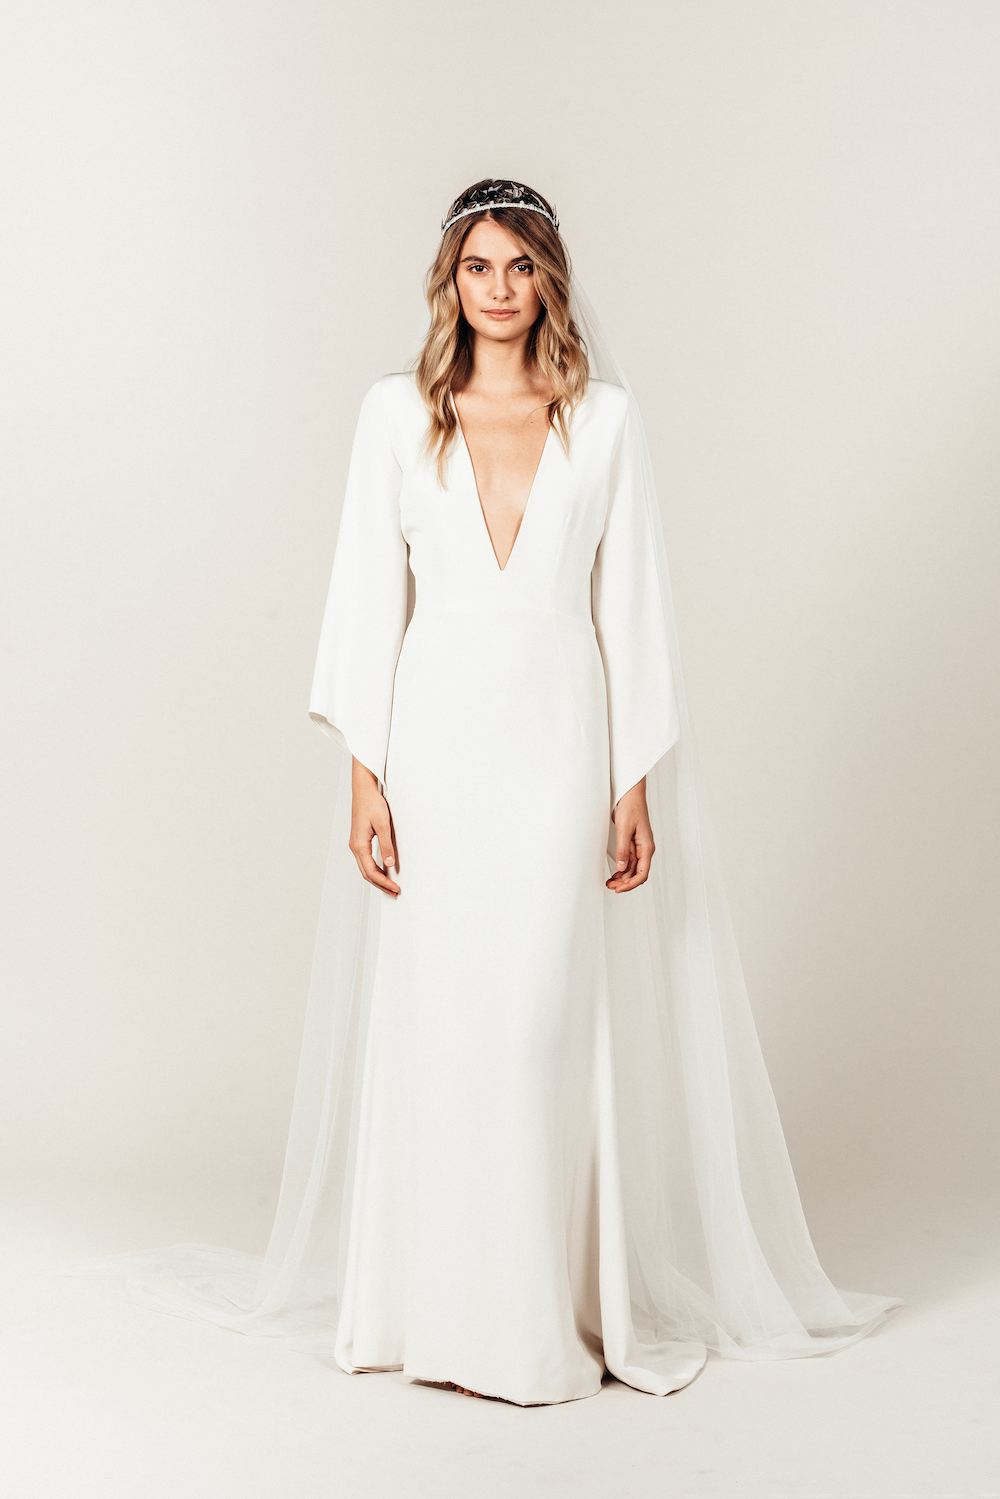 Prea James Bridal featured on the LOVE FIND CO. Dress Concierge